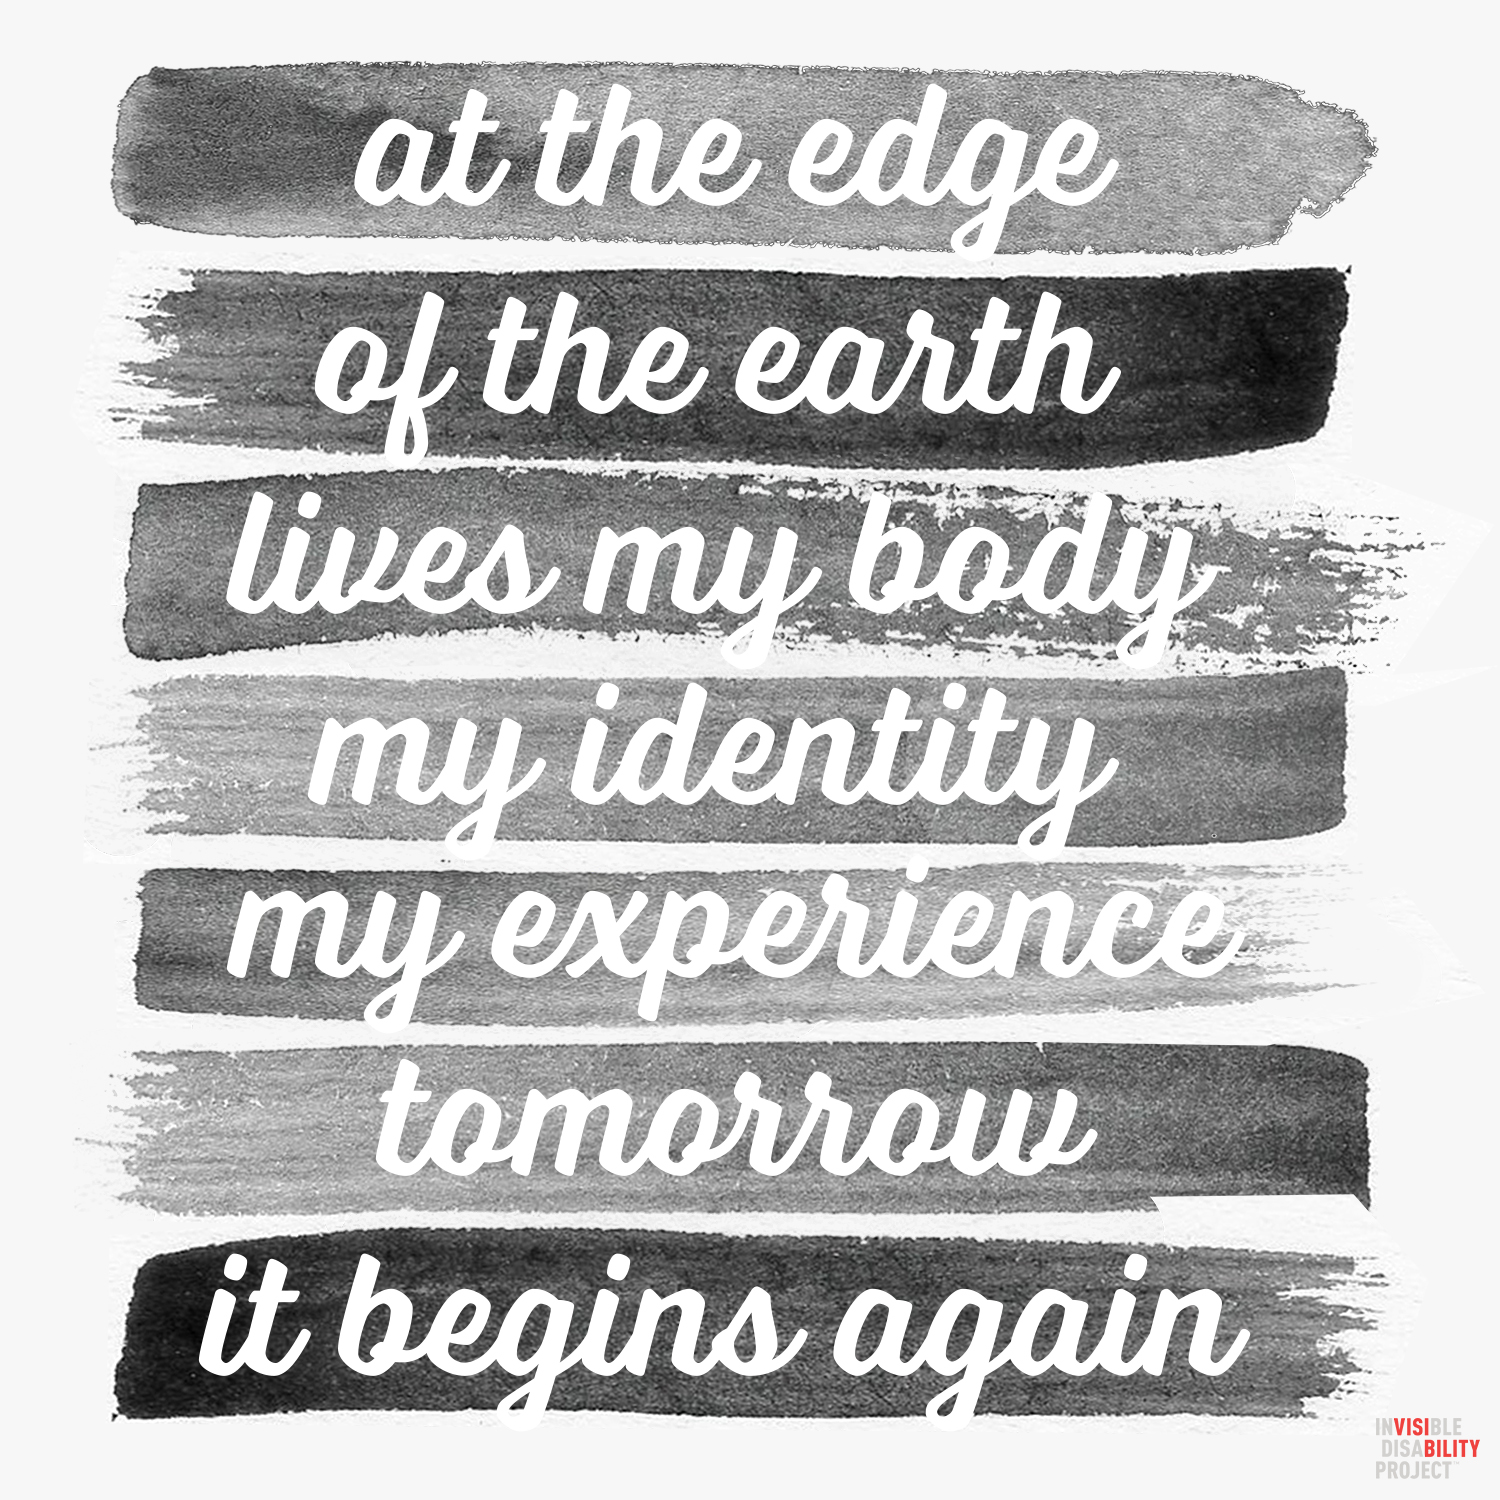 At the edge of the earth lives my body, my identity, my experience. Tomorrow, it begins again.